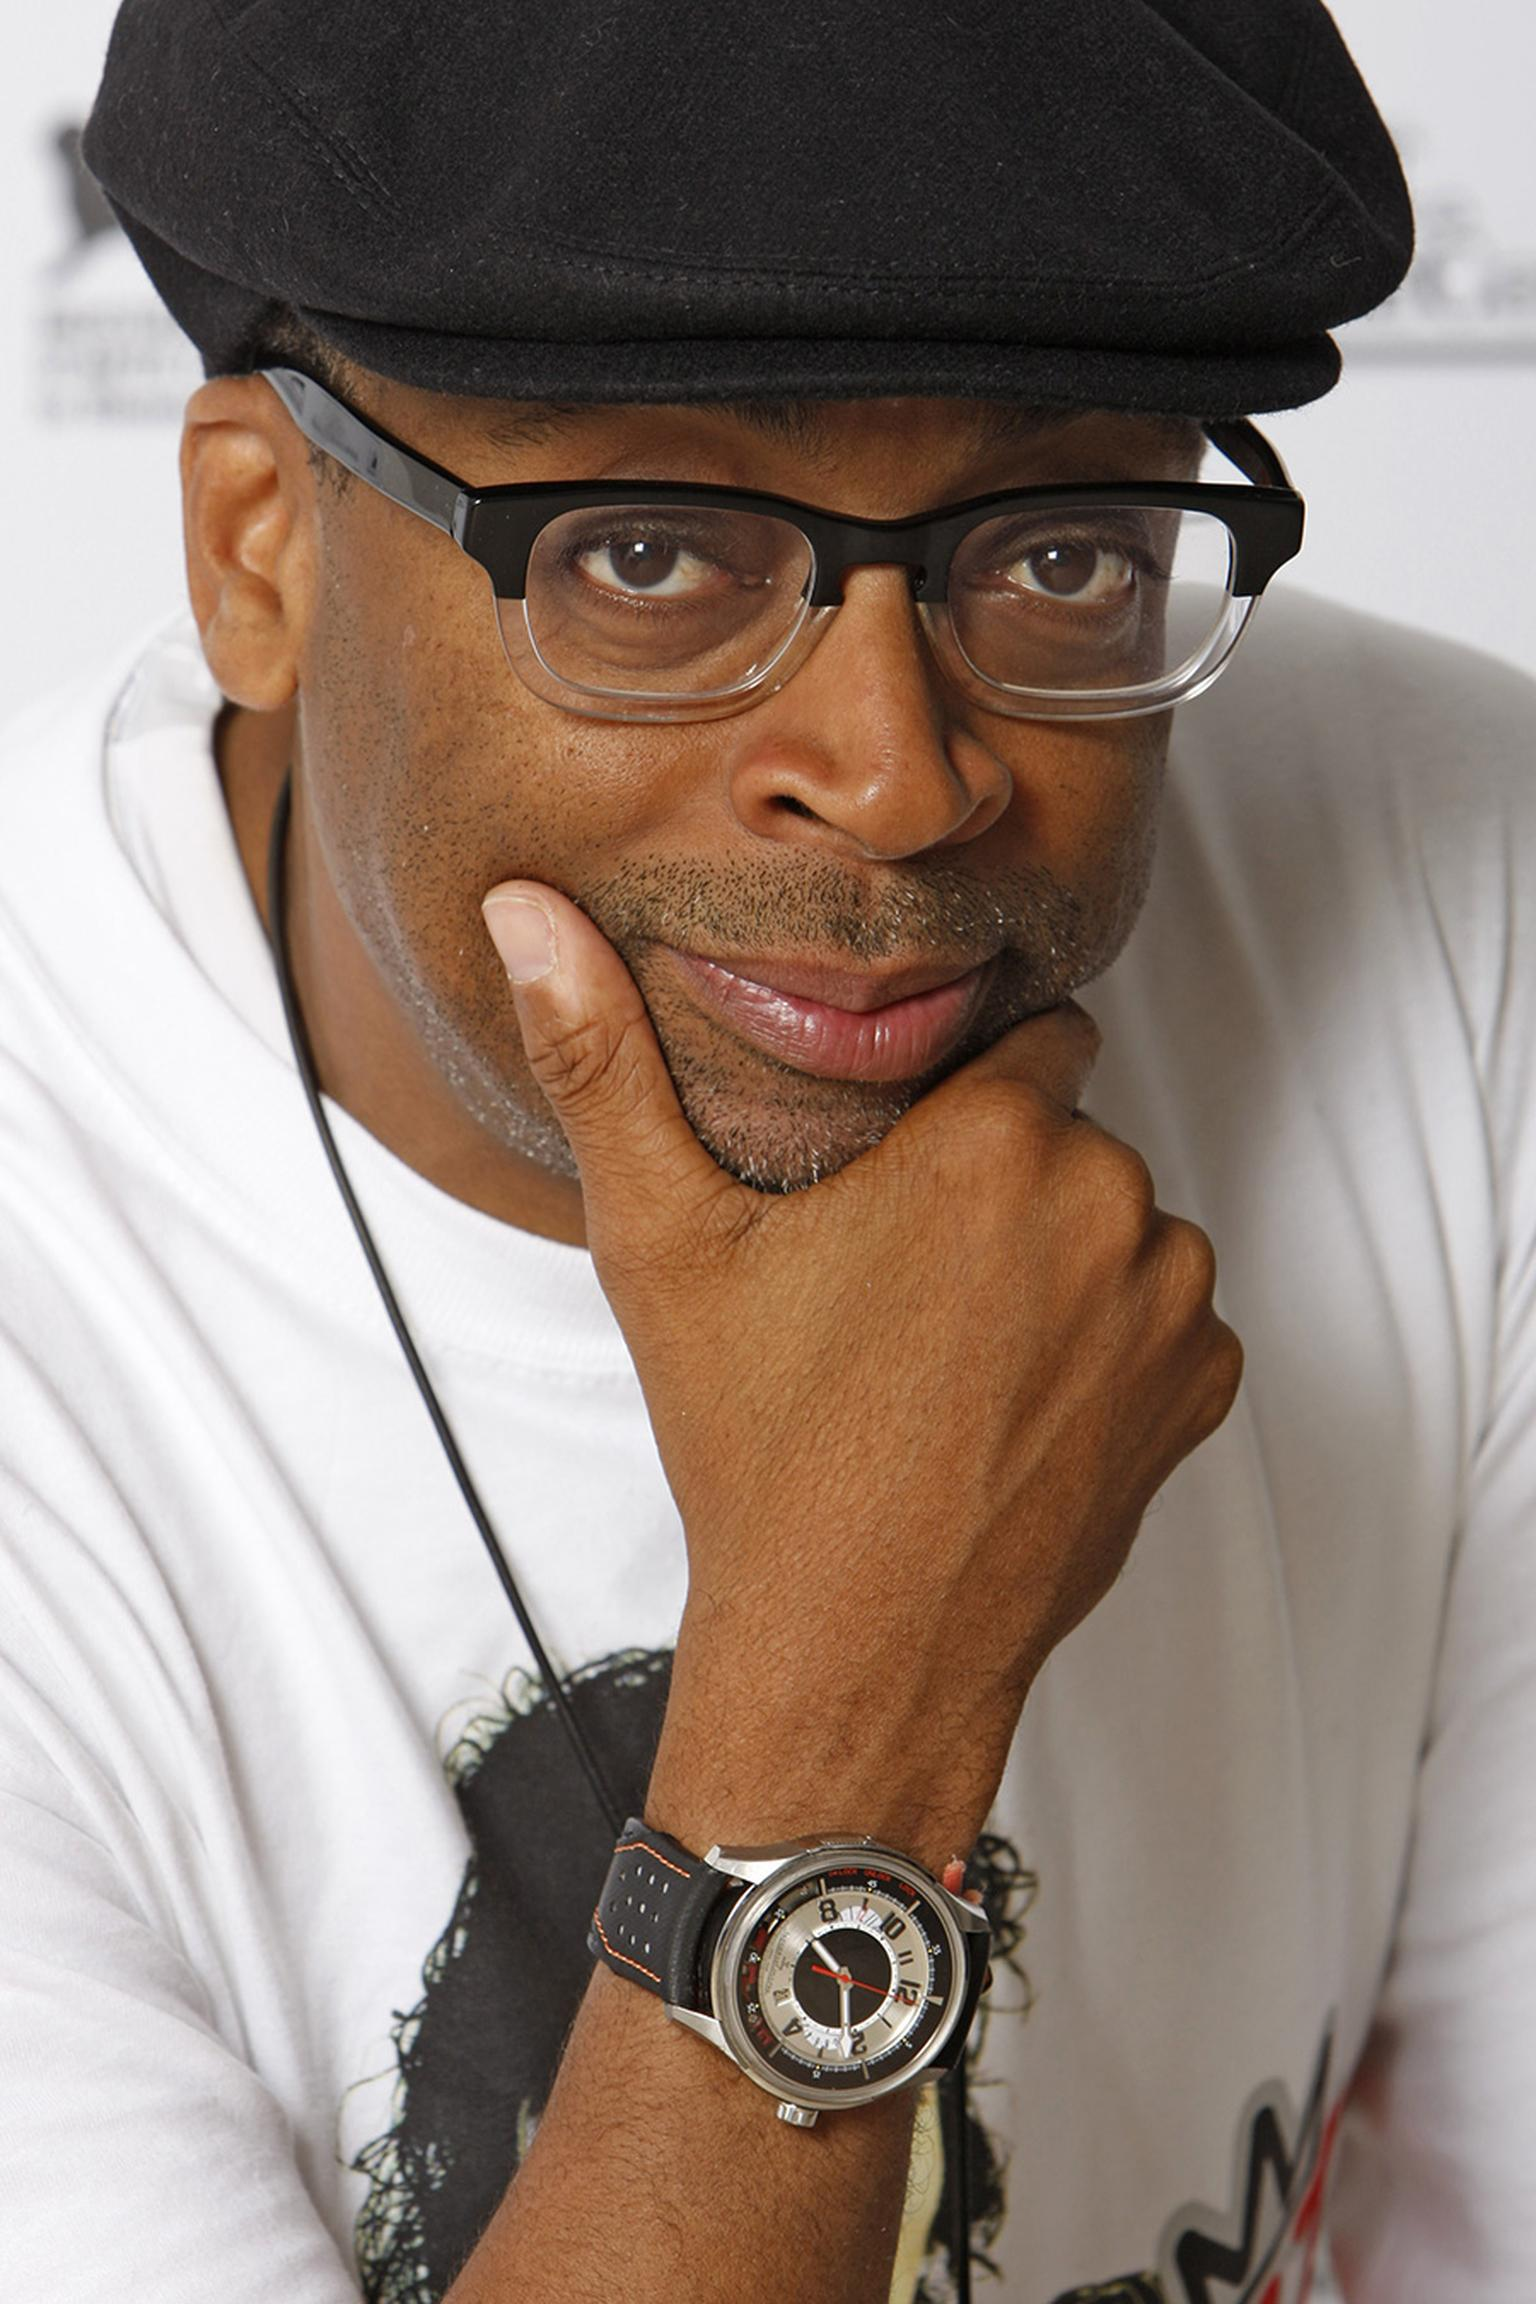 JLC-Director-Spike-Lee-wearing-his-Jaeger-LeCoultre-AMVOX-2-during-the-69th-Venice-Film-Festival.jpg